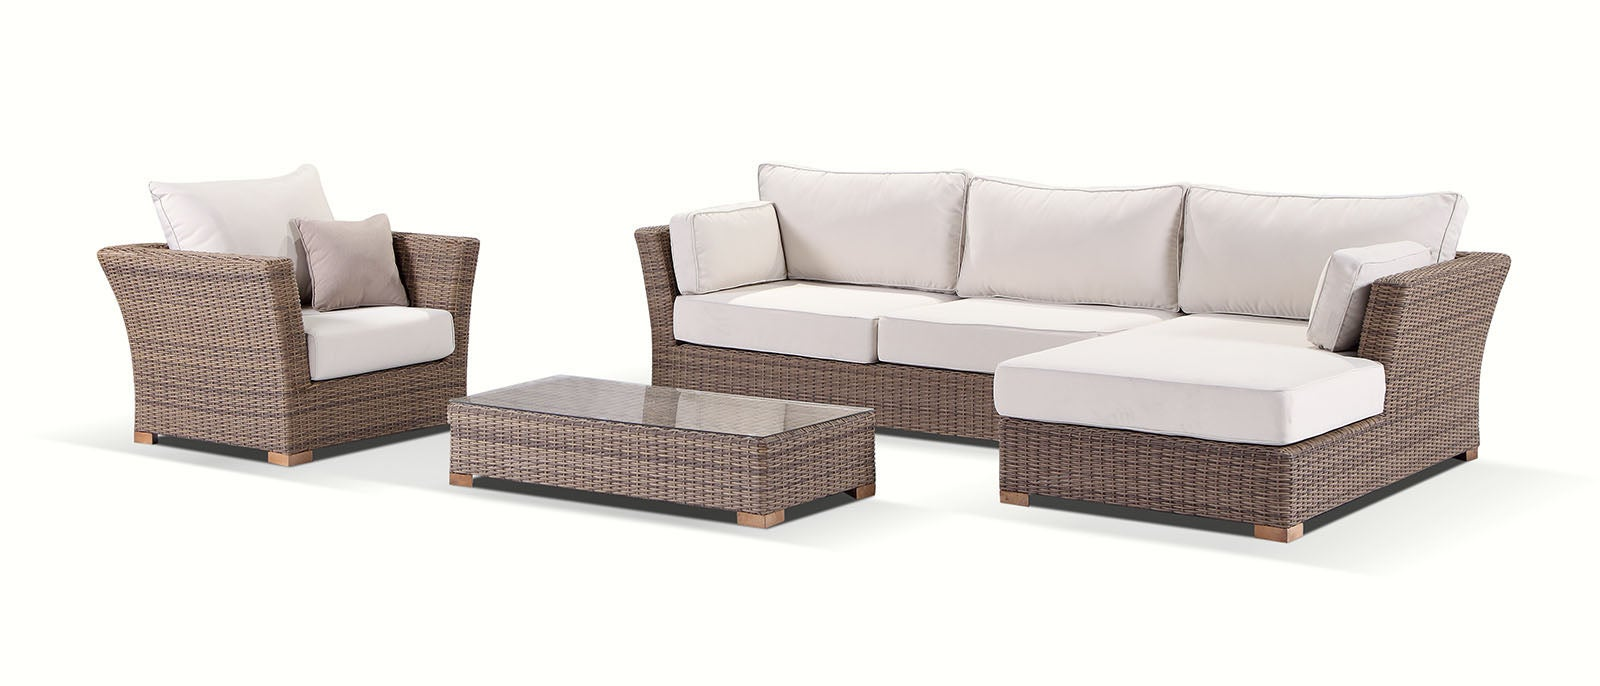 Coco Outdoor Wicker Chaise Lounge With Arm Chair And ...